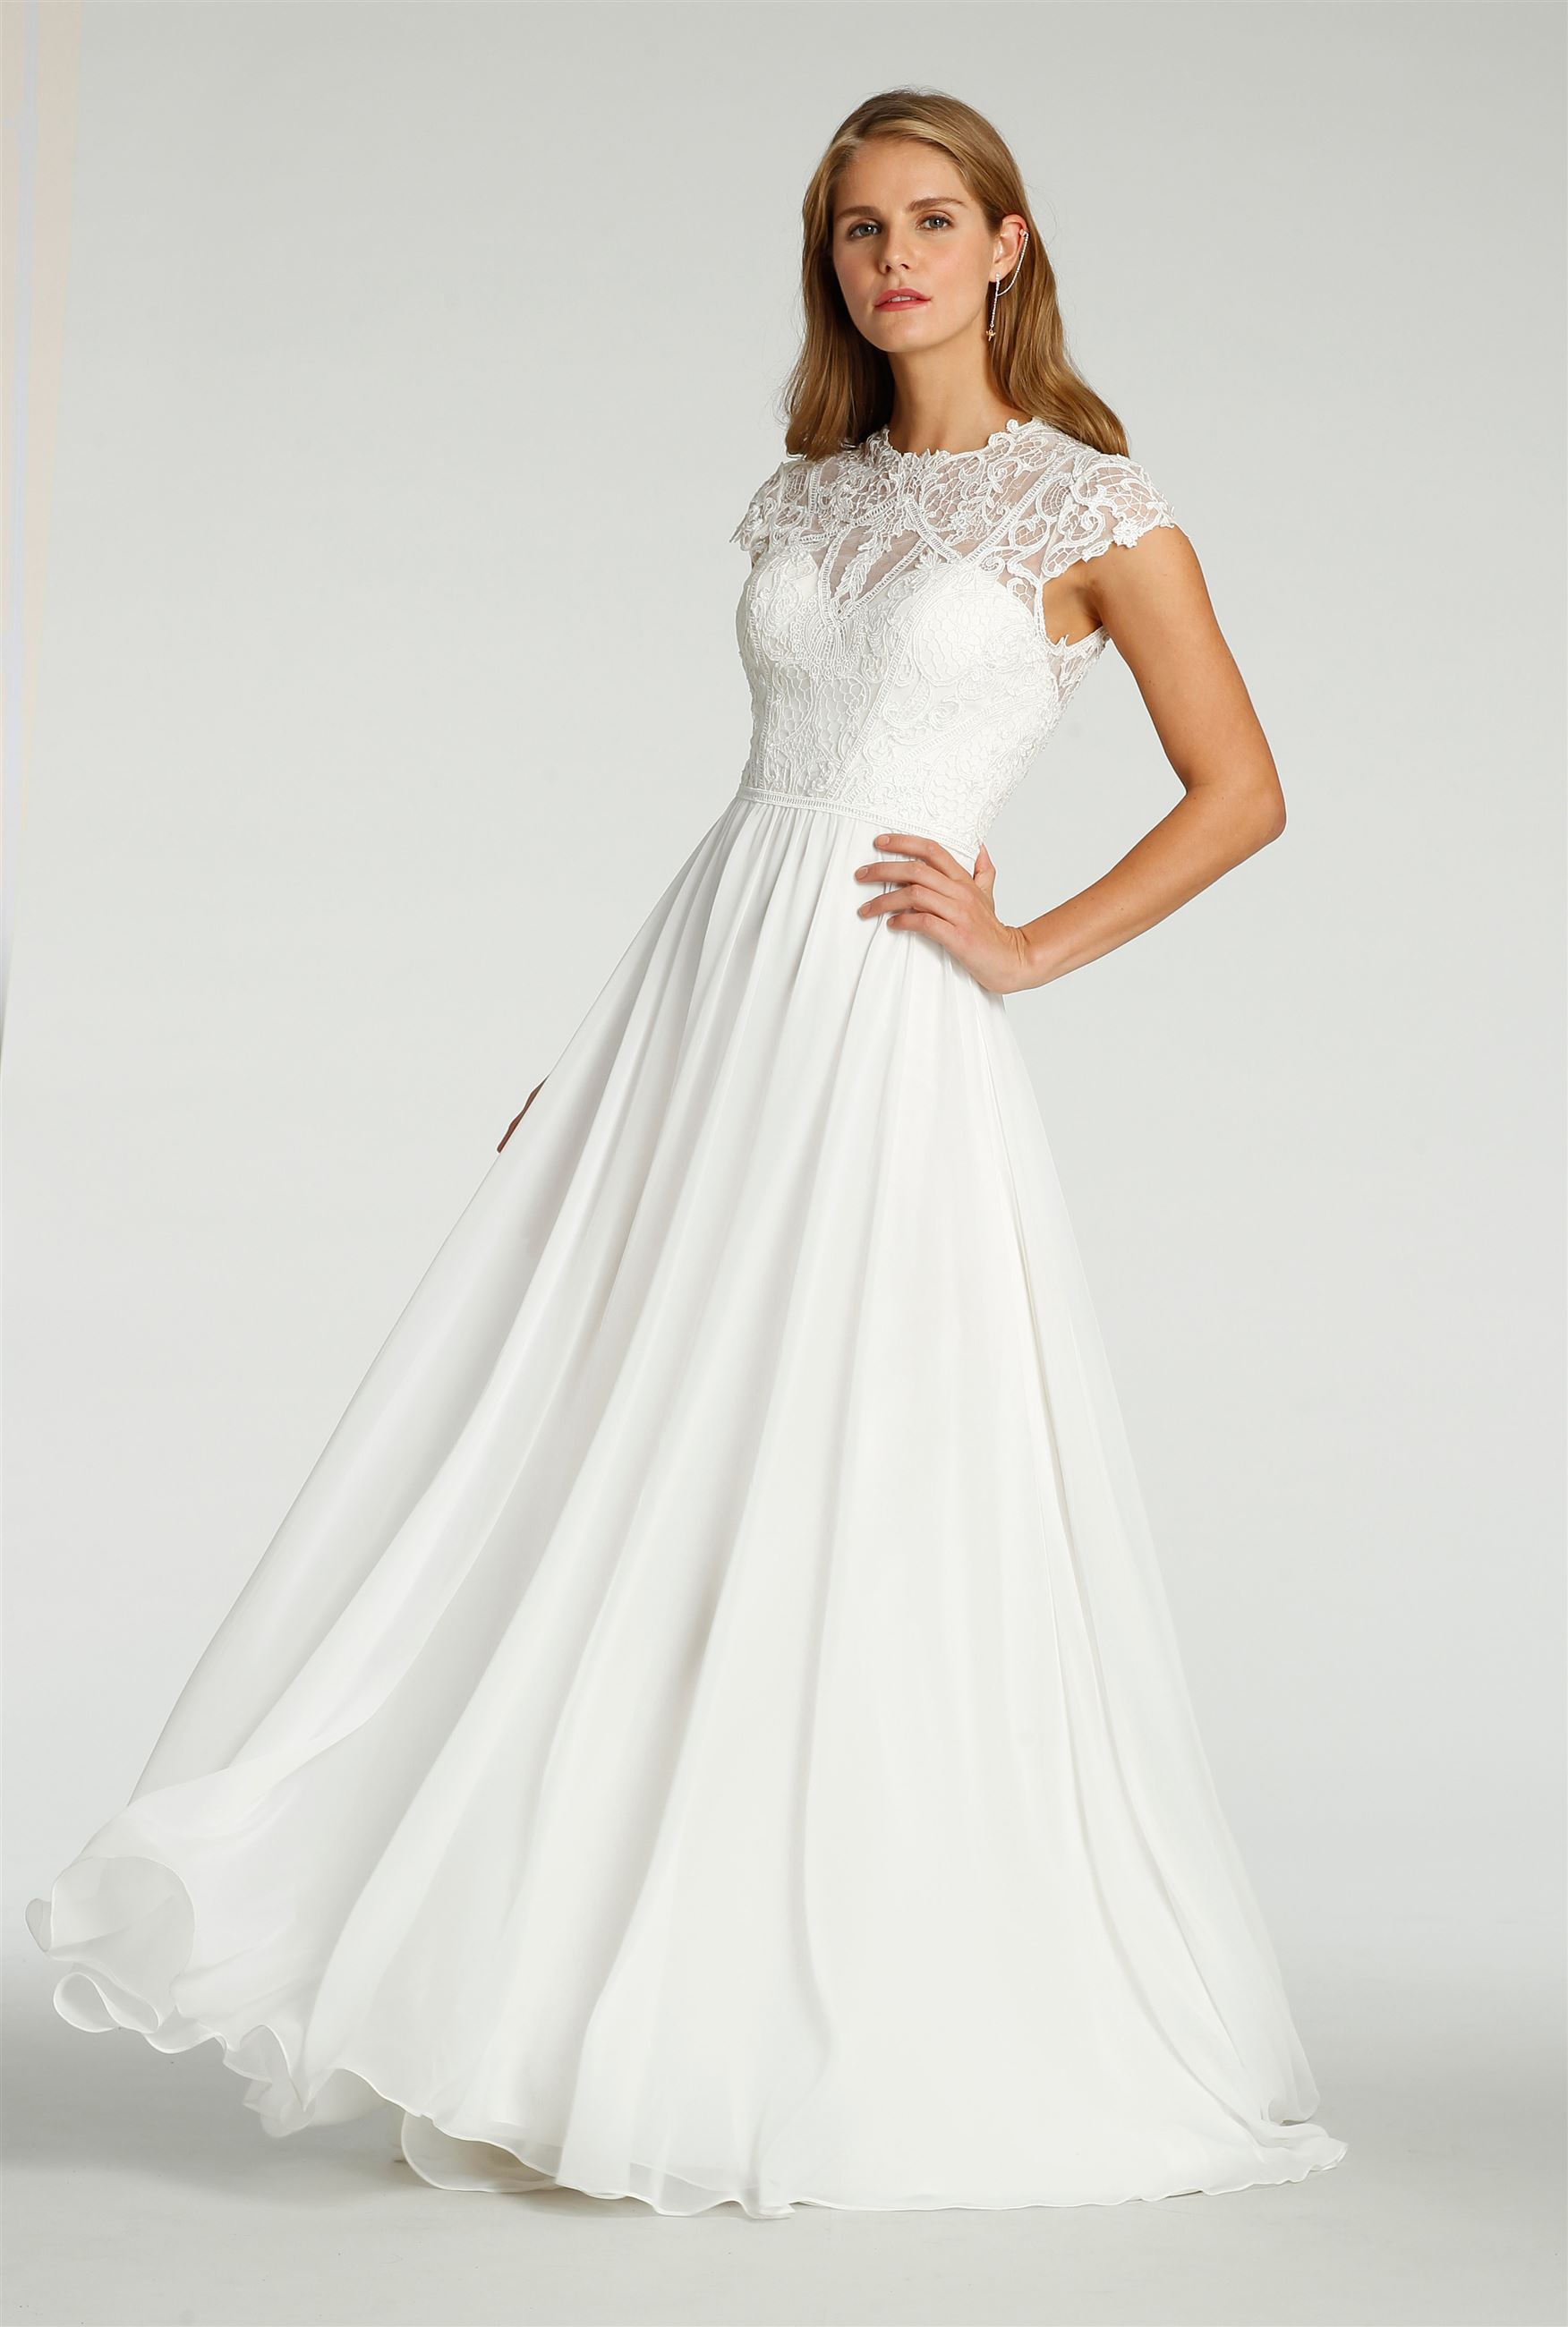 Vanna - Size 12 - Ivory - $1499 - Sample price $799